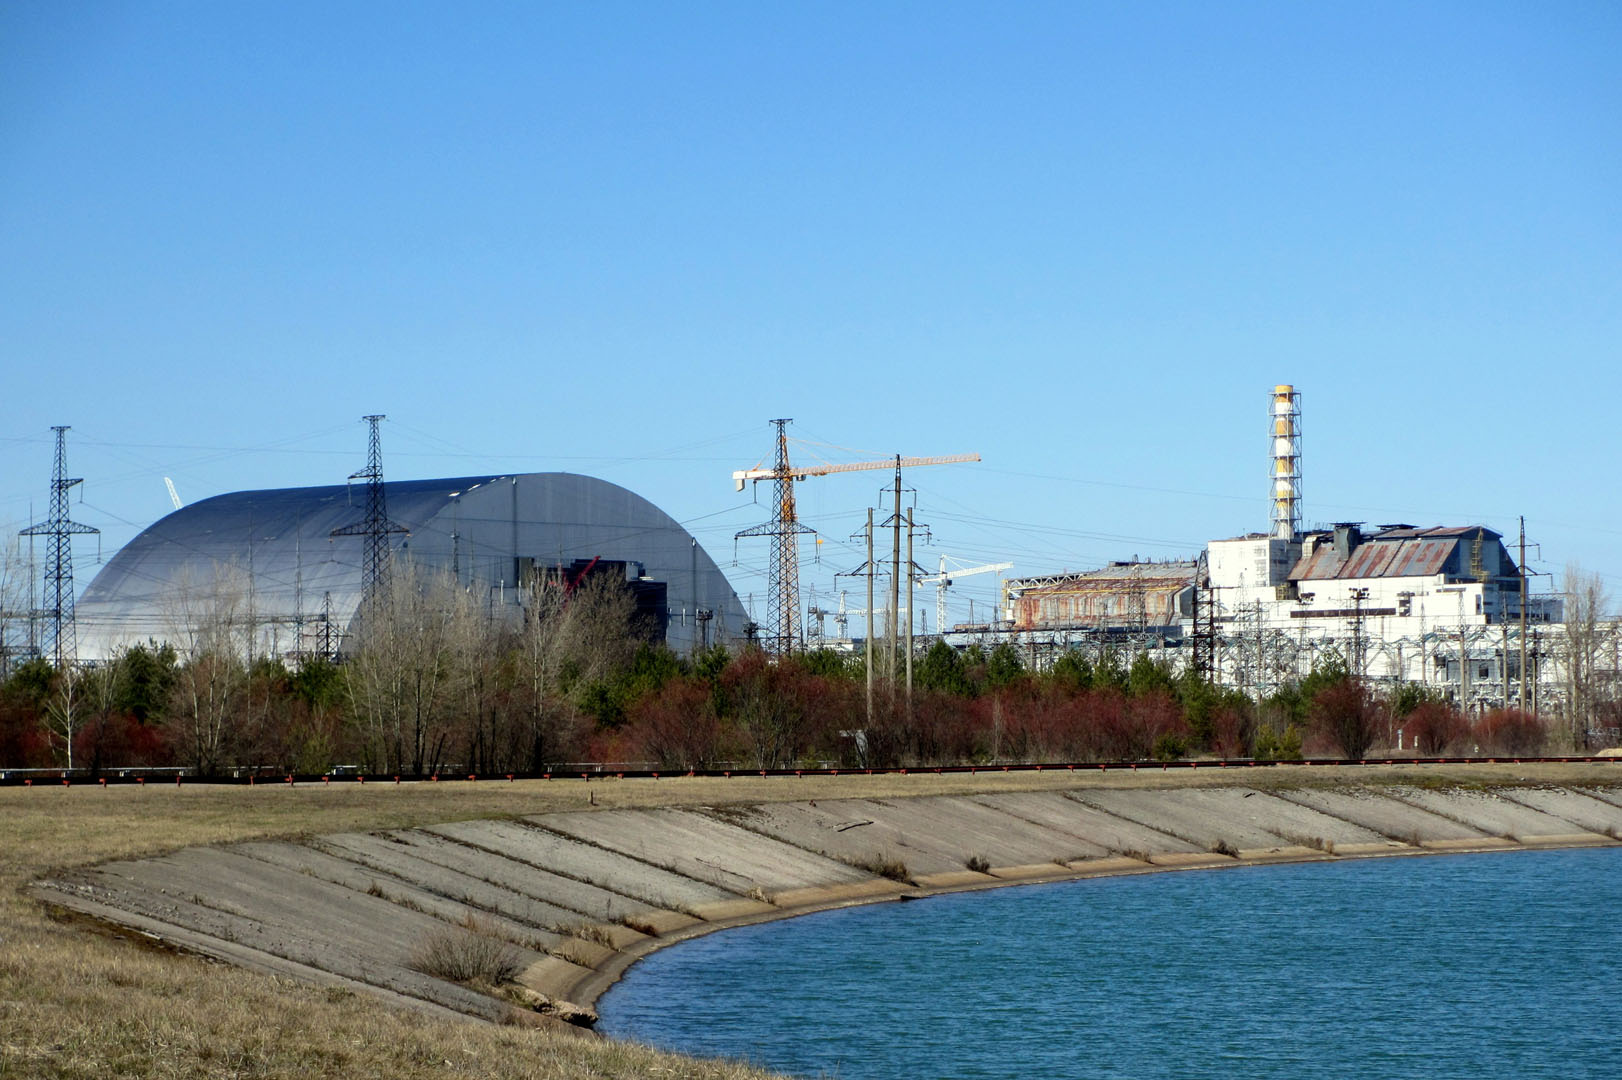 Sarcophagus over the Nuclear Power Plant in Chernobyl